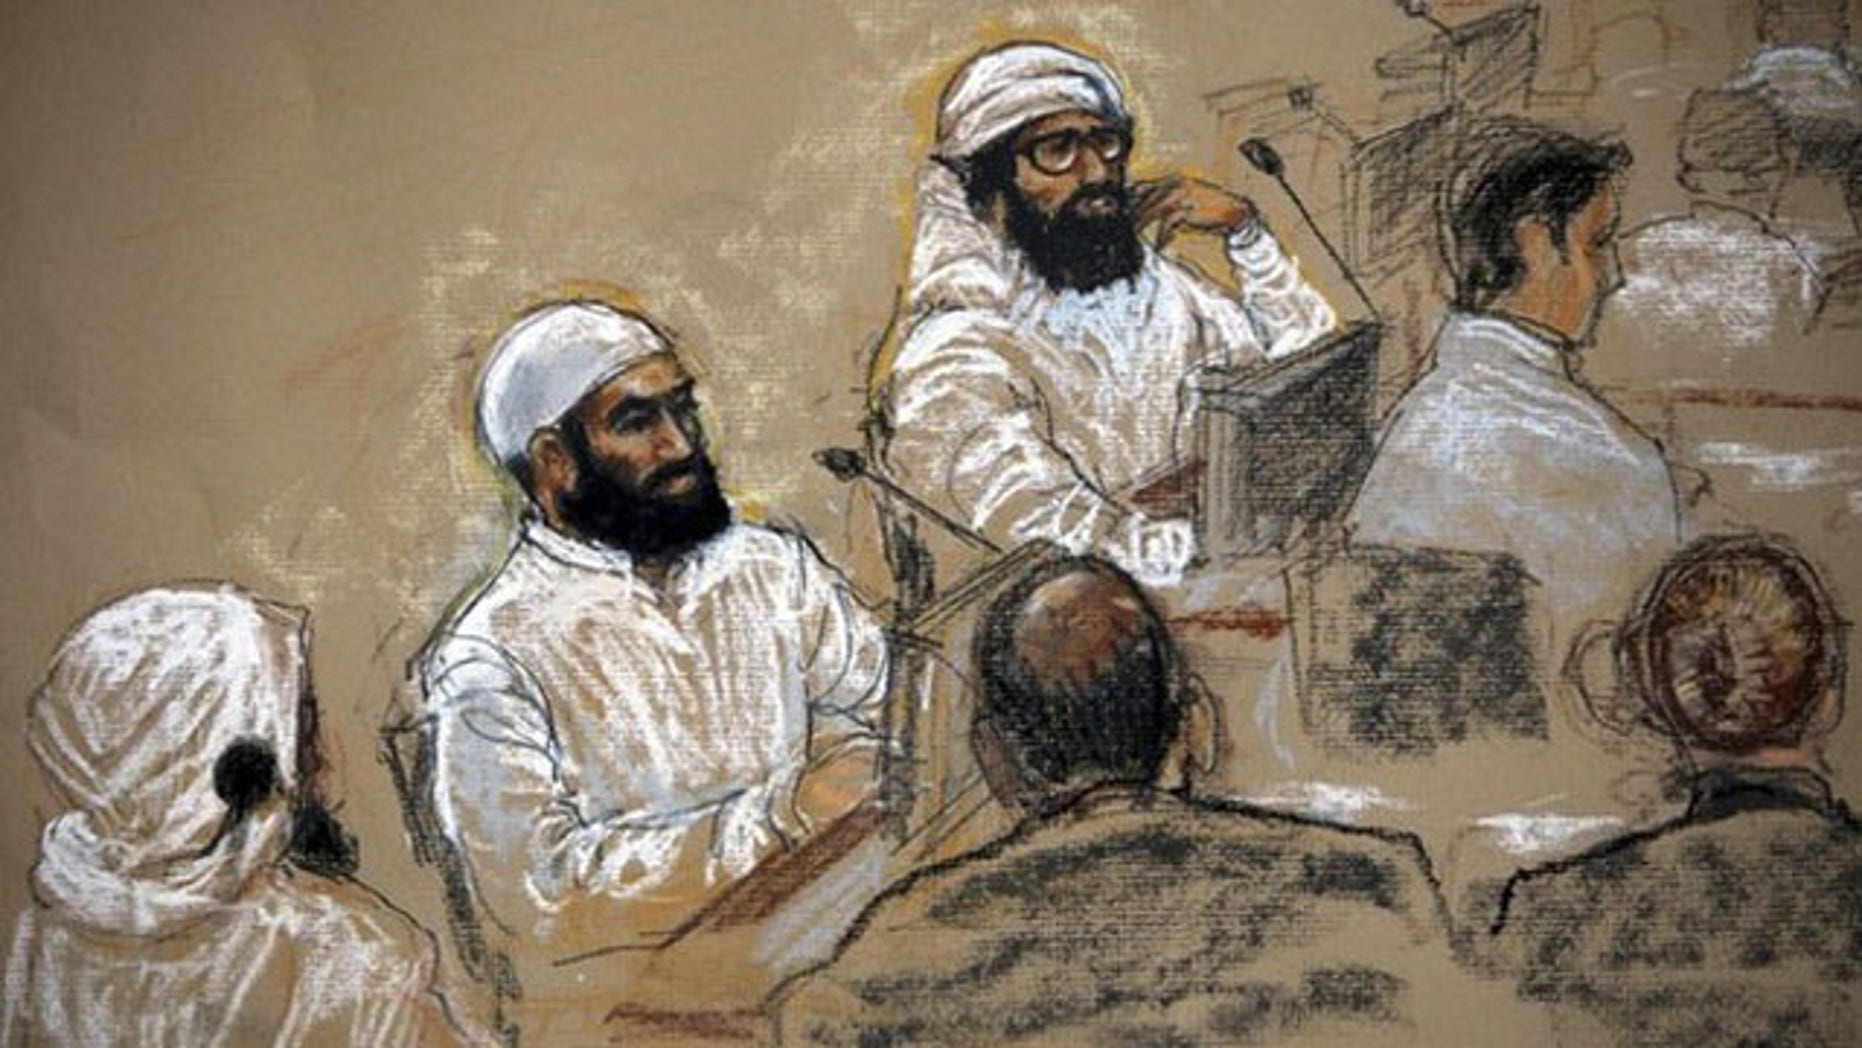 In this July 16, 2009 file photo of a sketch by courtroom artist Janet Hamlin, alleged September 11 co-conspirators sit with their legal teams inside the courtroom at Guantanamo Bay. Mustafa al Hawsawi is on the right.